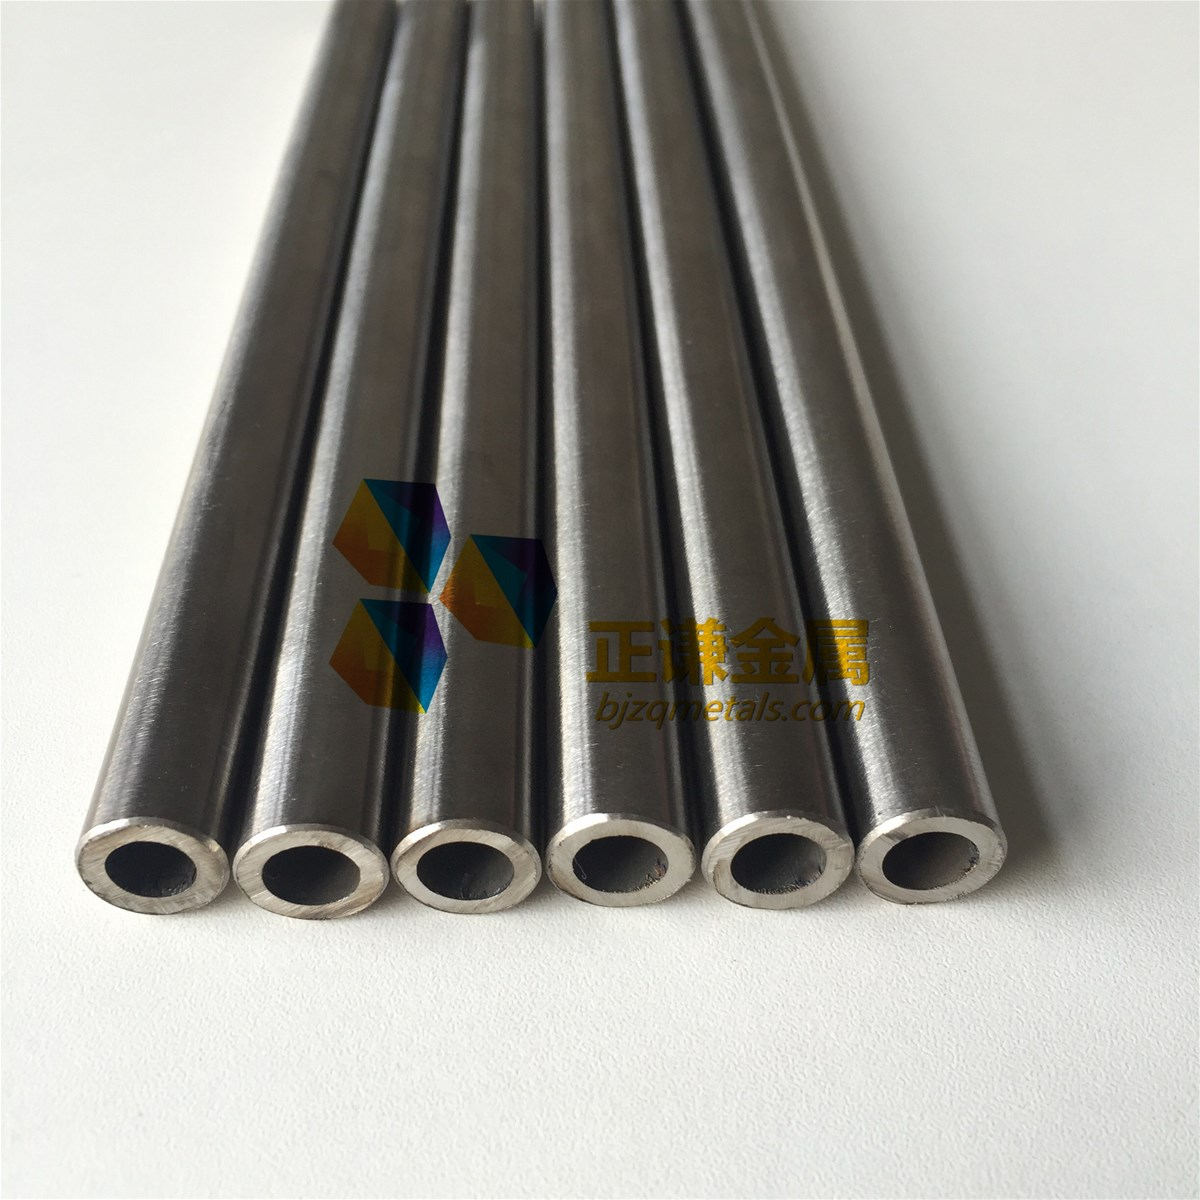 Hot Sale Good Tantalum Metal Prices for Tantalum Tube